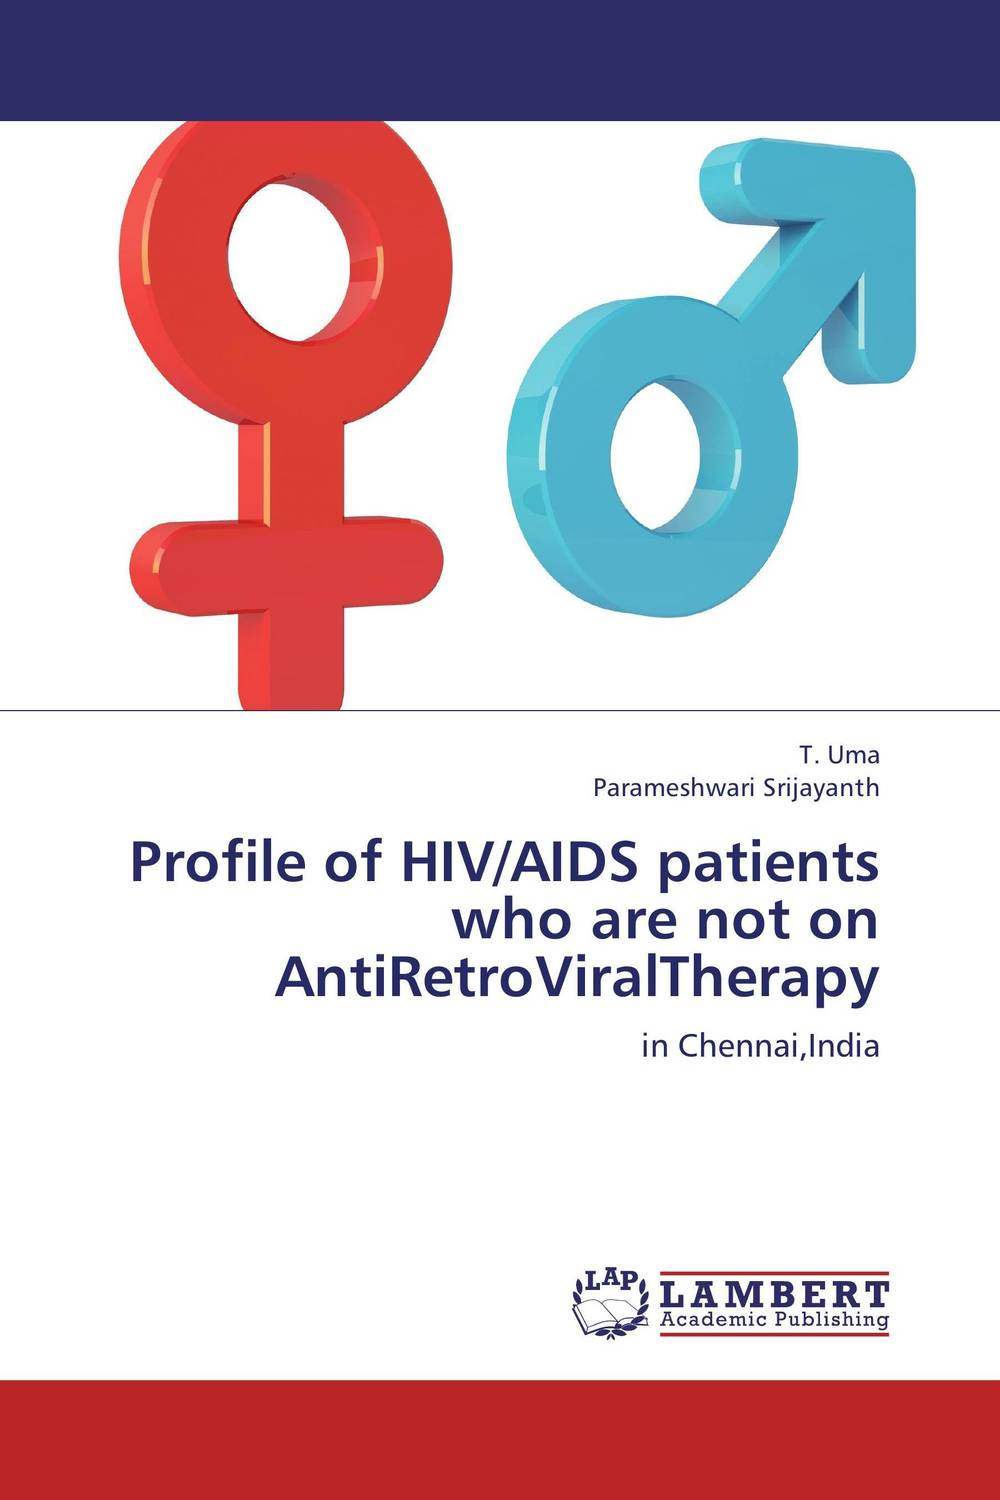 Profile of HIV/AIDS patients who are not on  AntiRetroViralTherapy seduced by death – doctors patients